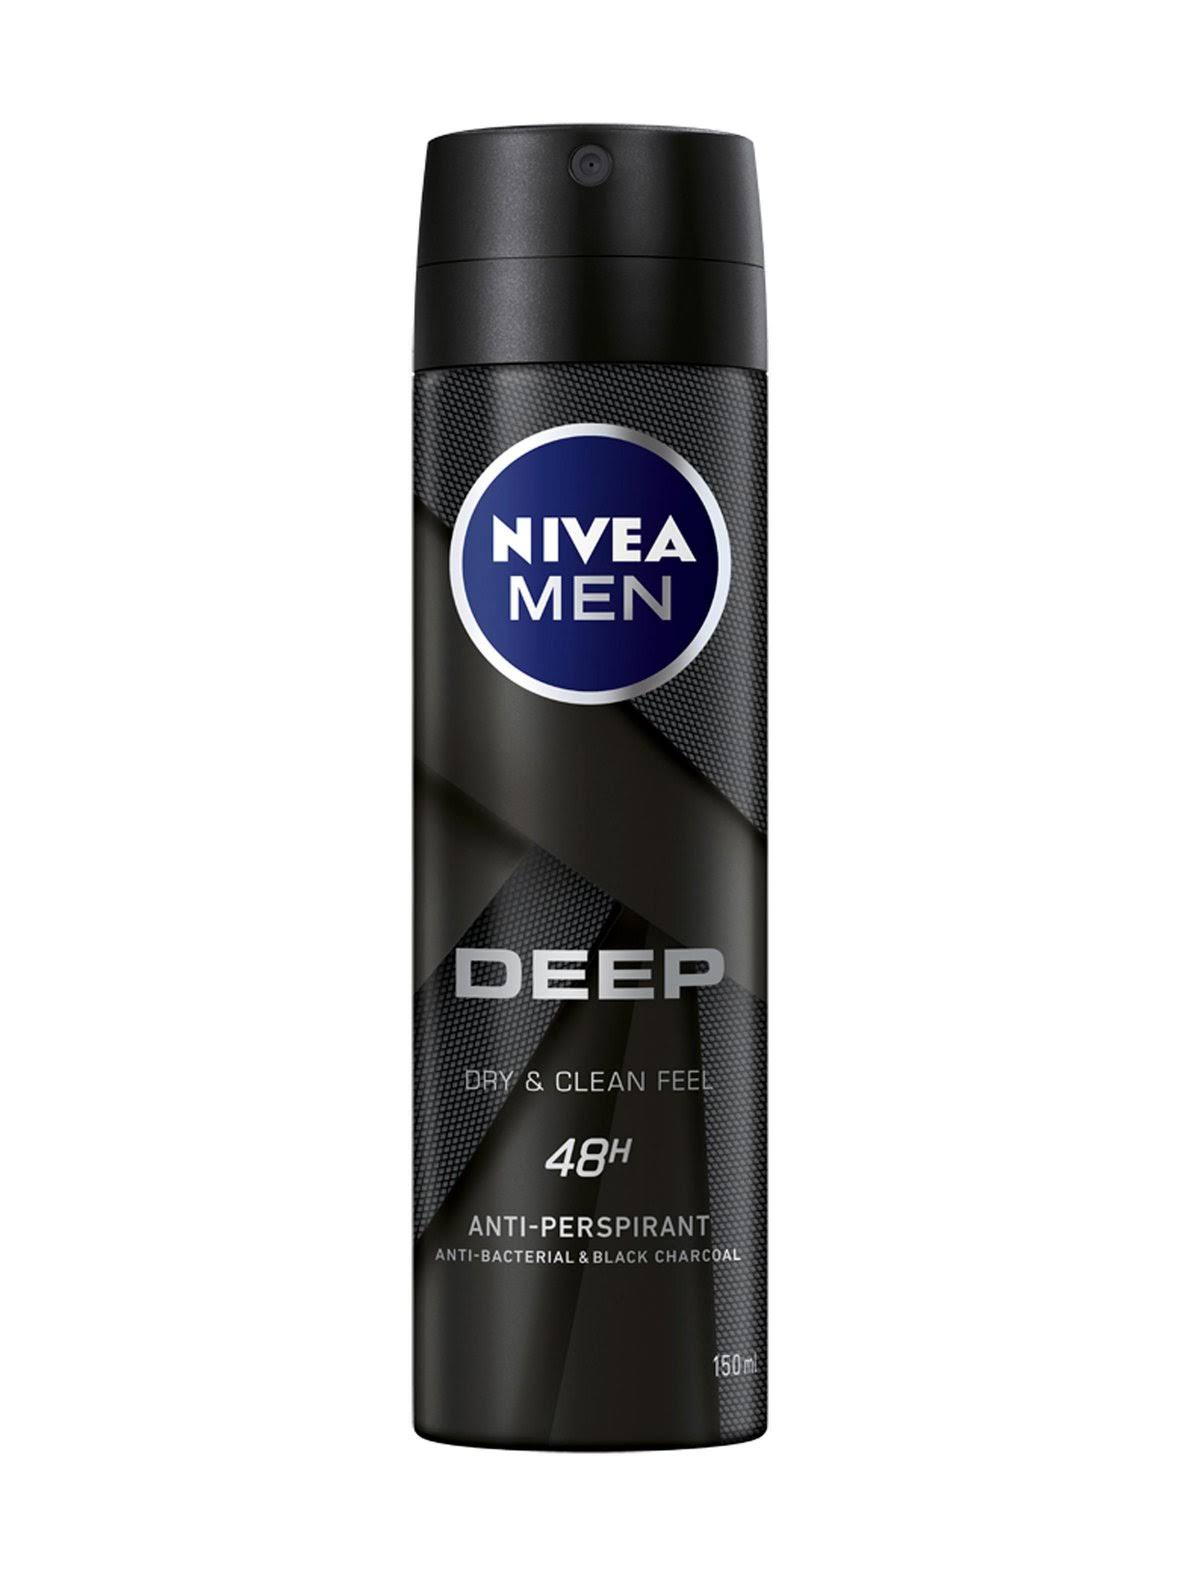 NIVEA Men Deep Anti-perspirant Deodorant Spray - 150ml